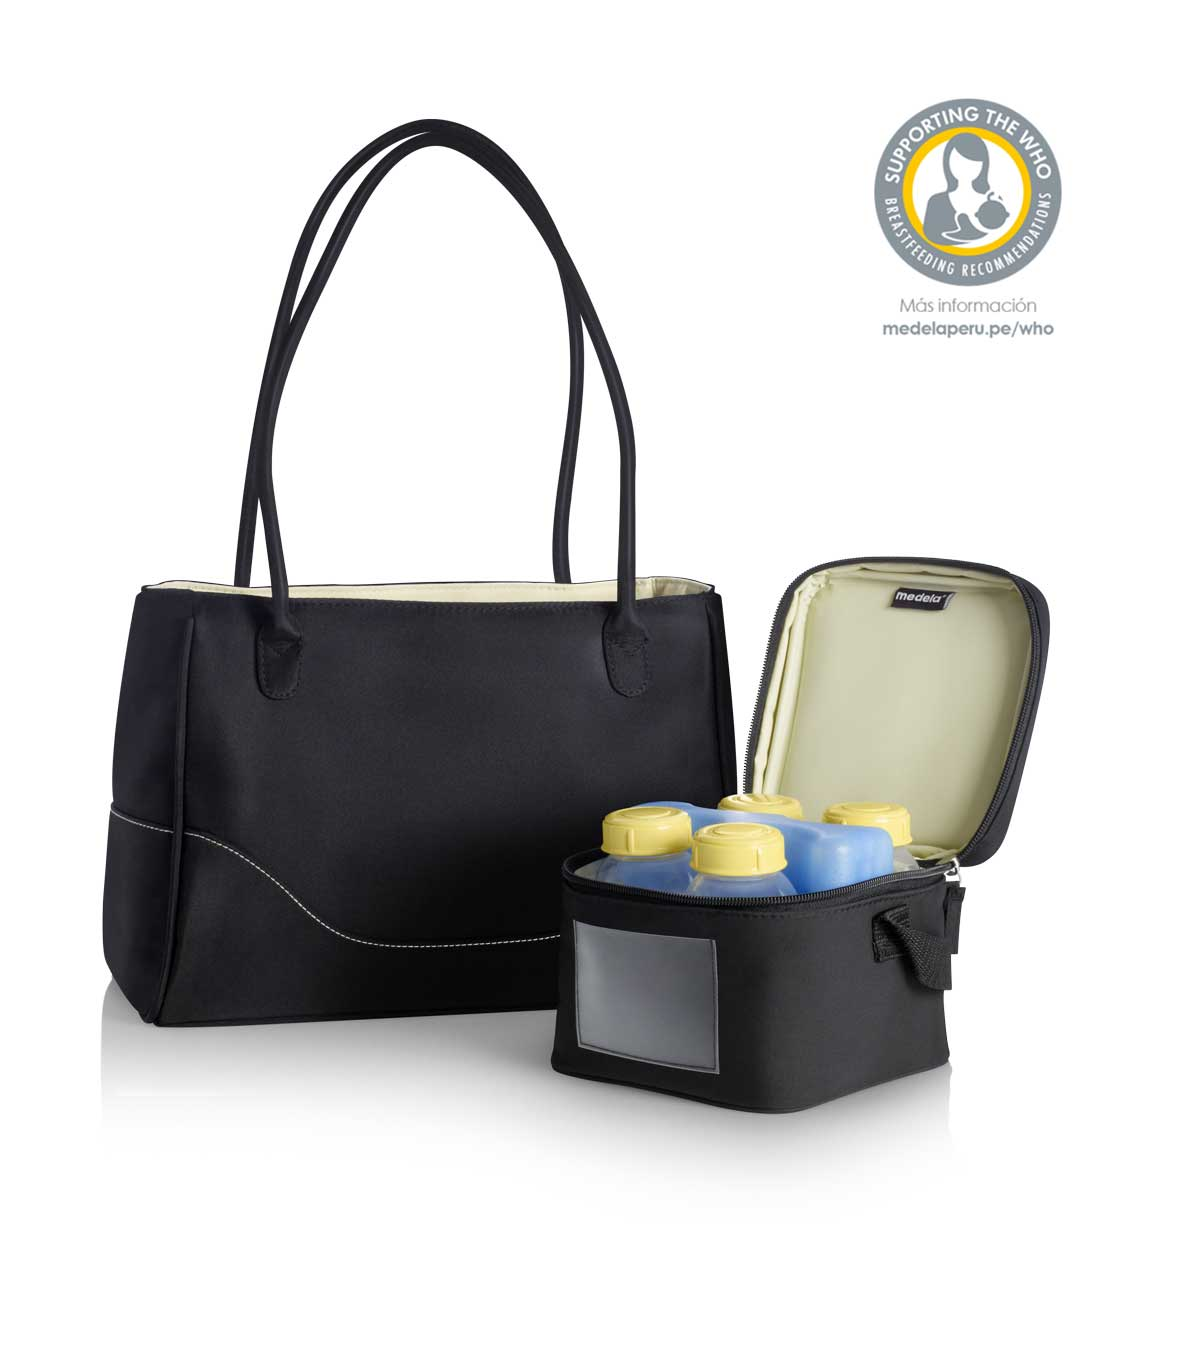 Citystyle™ breast pump bag